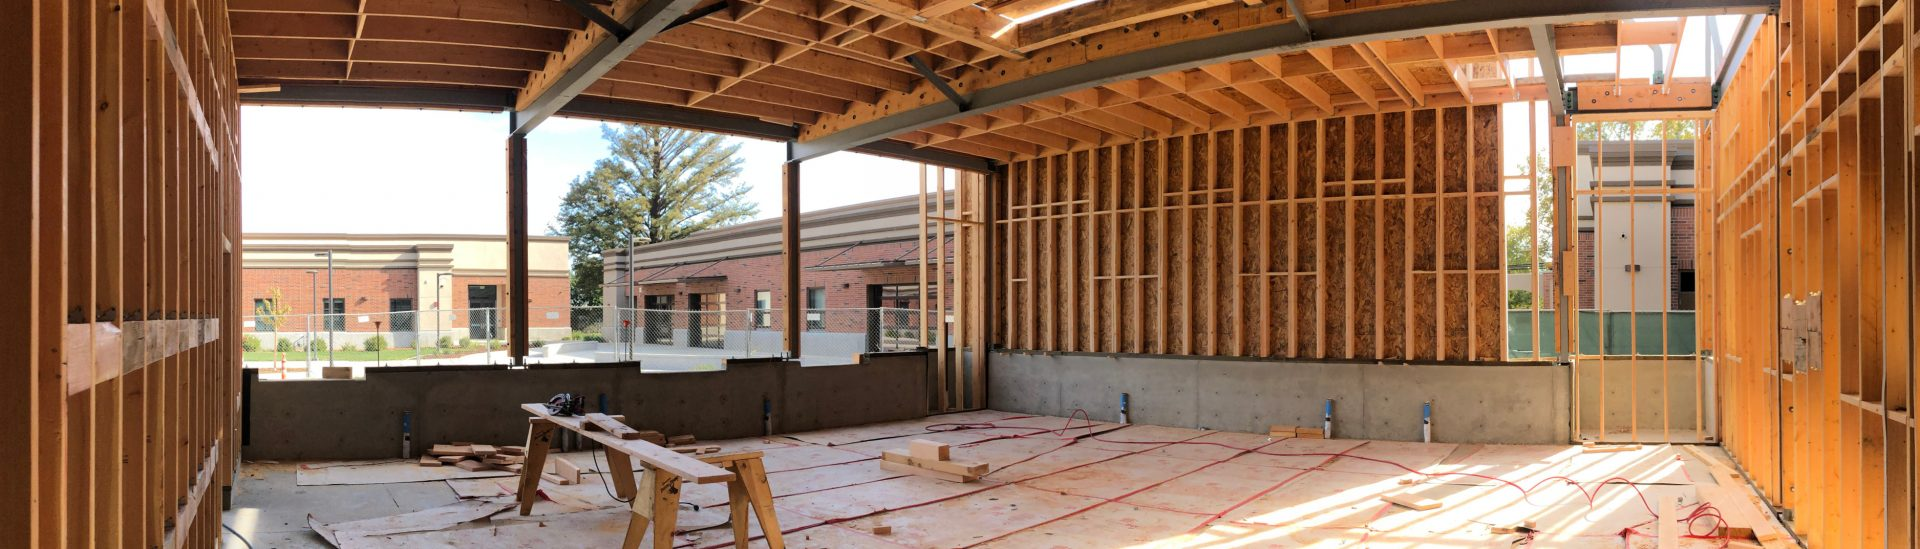 PROJECT UPDATE: Winters High School Phase 3 Construction